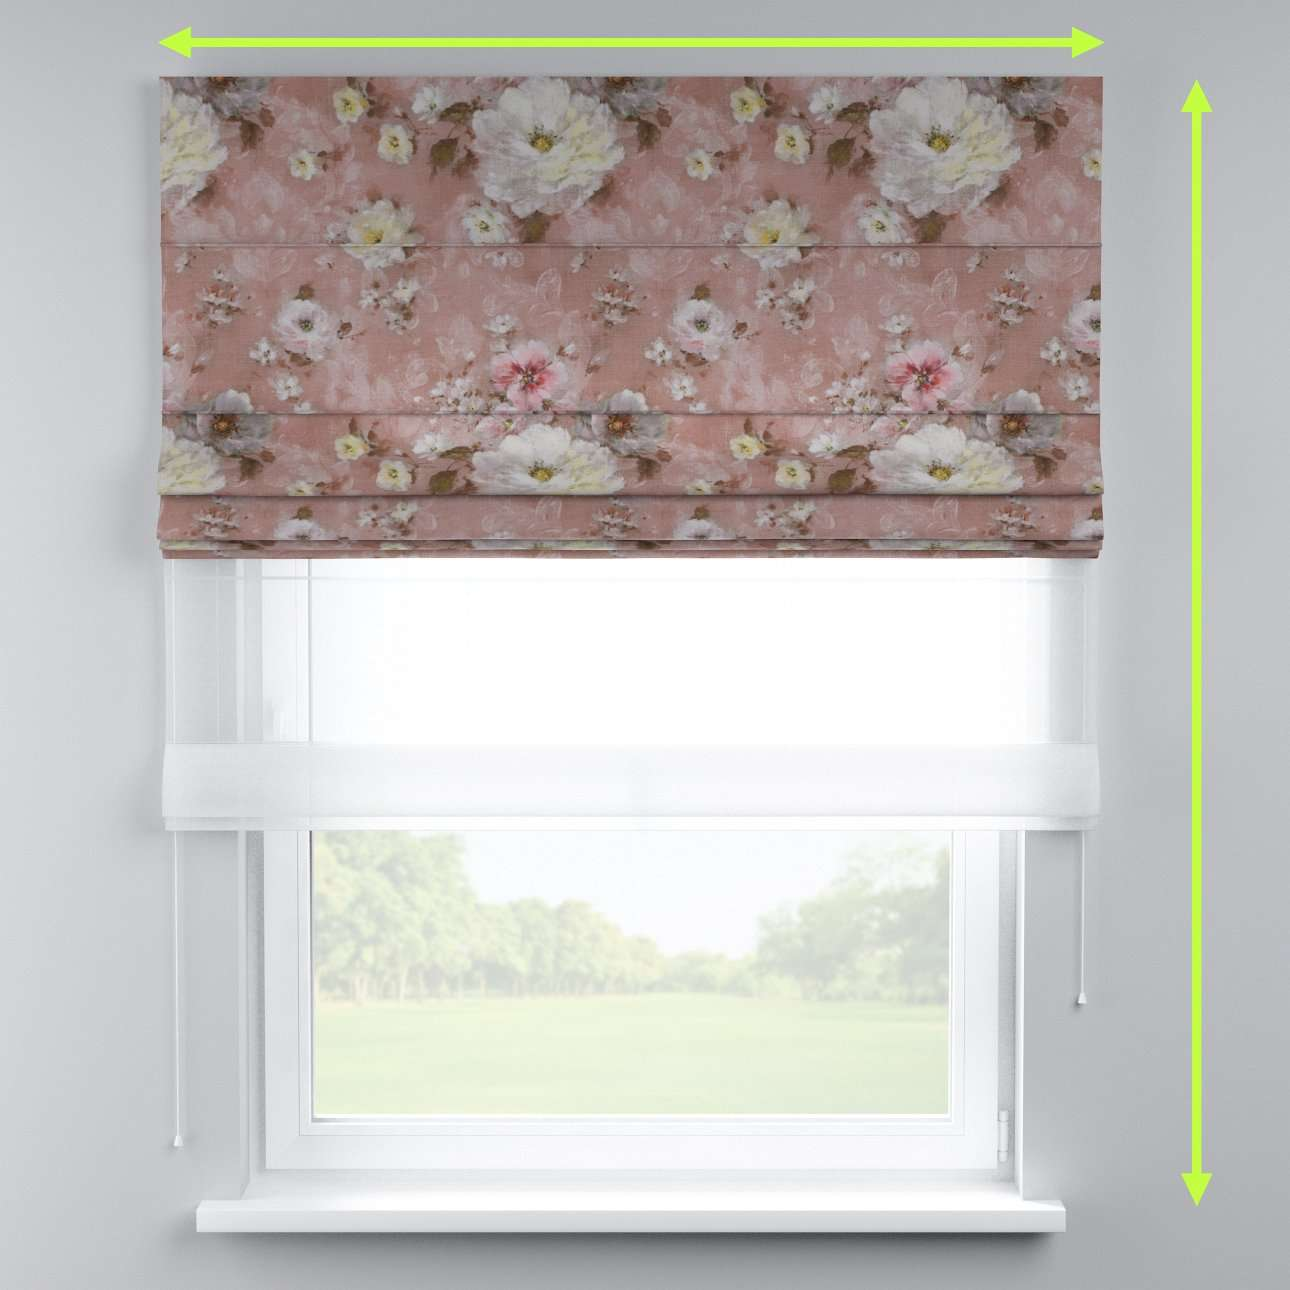 Voile and fabric roman blind (DUO II) in collection Monet, fabric: 137-83